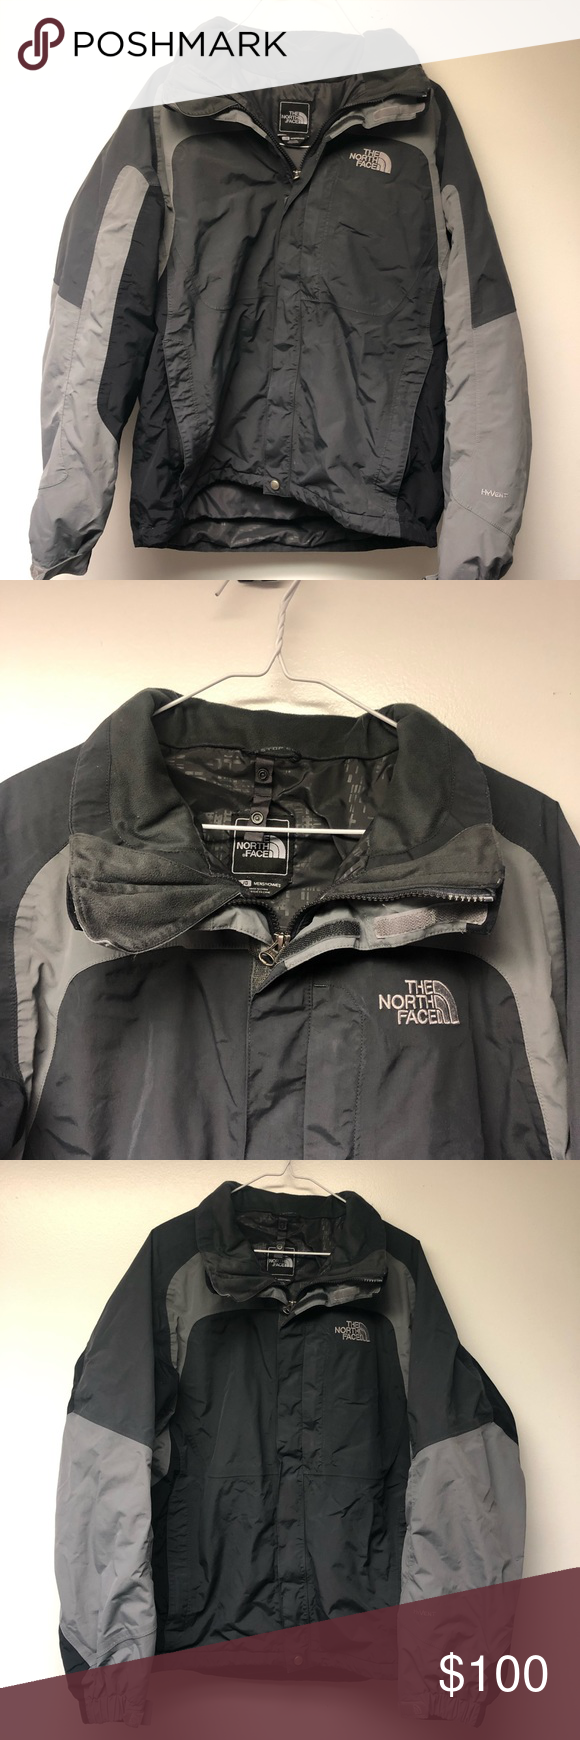 North Face 2 In 1 Coat And Jacket Jackets The North Face Clothes Design [ 1740 x 580 Pixel ]